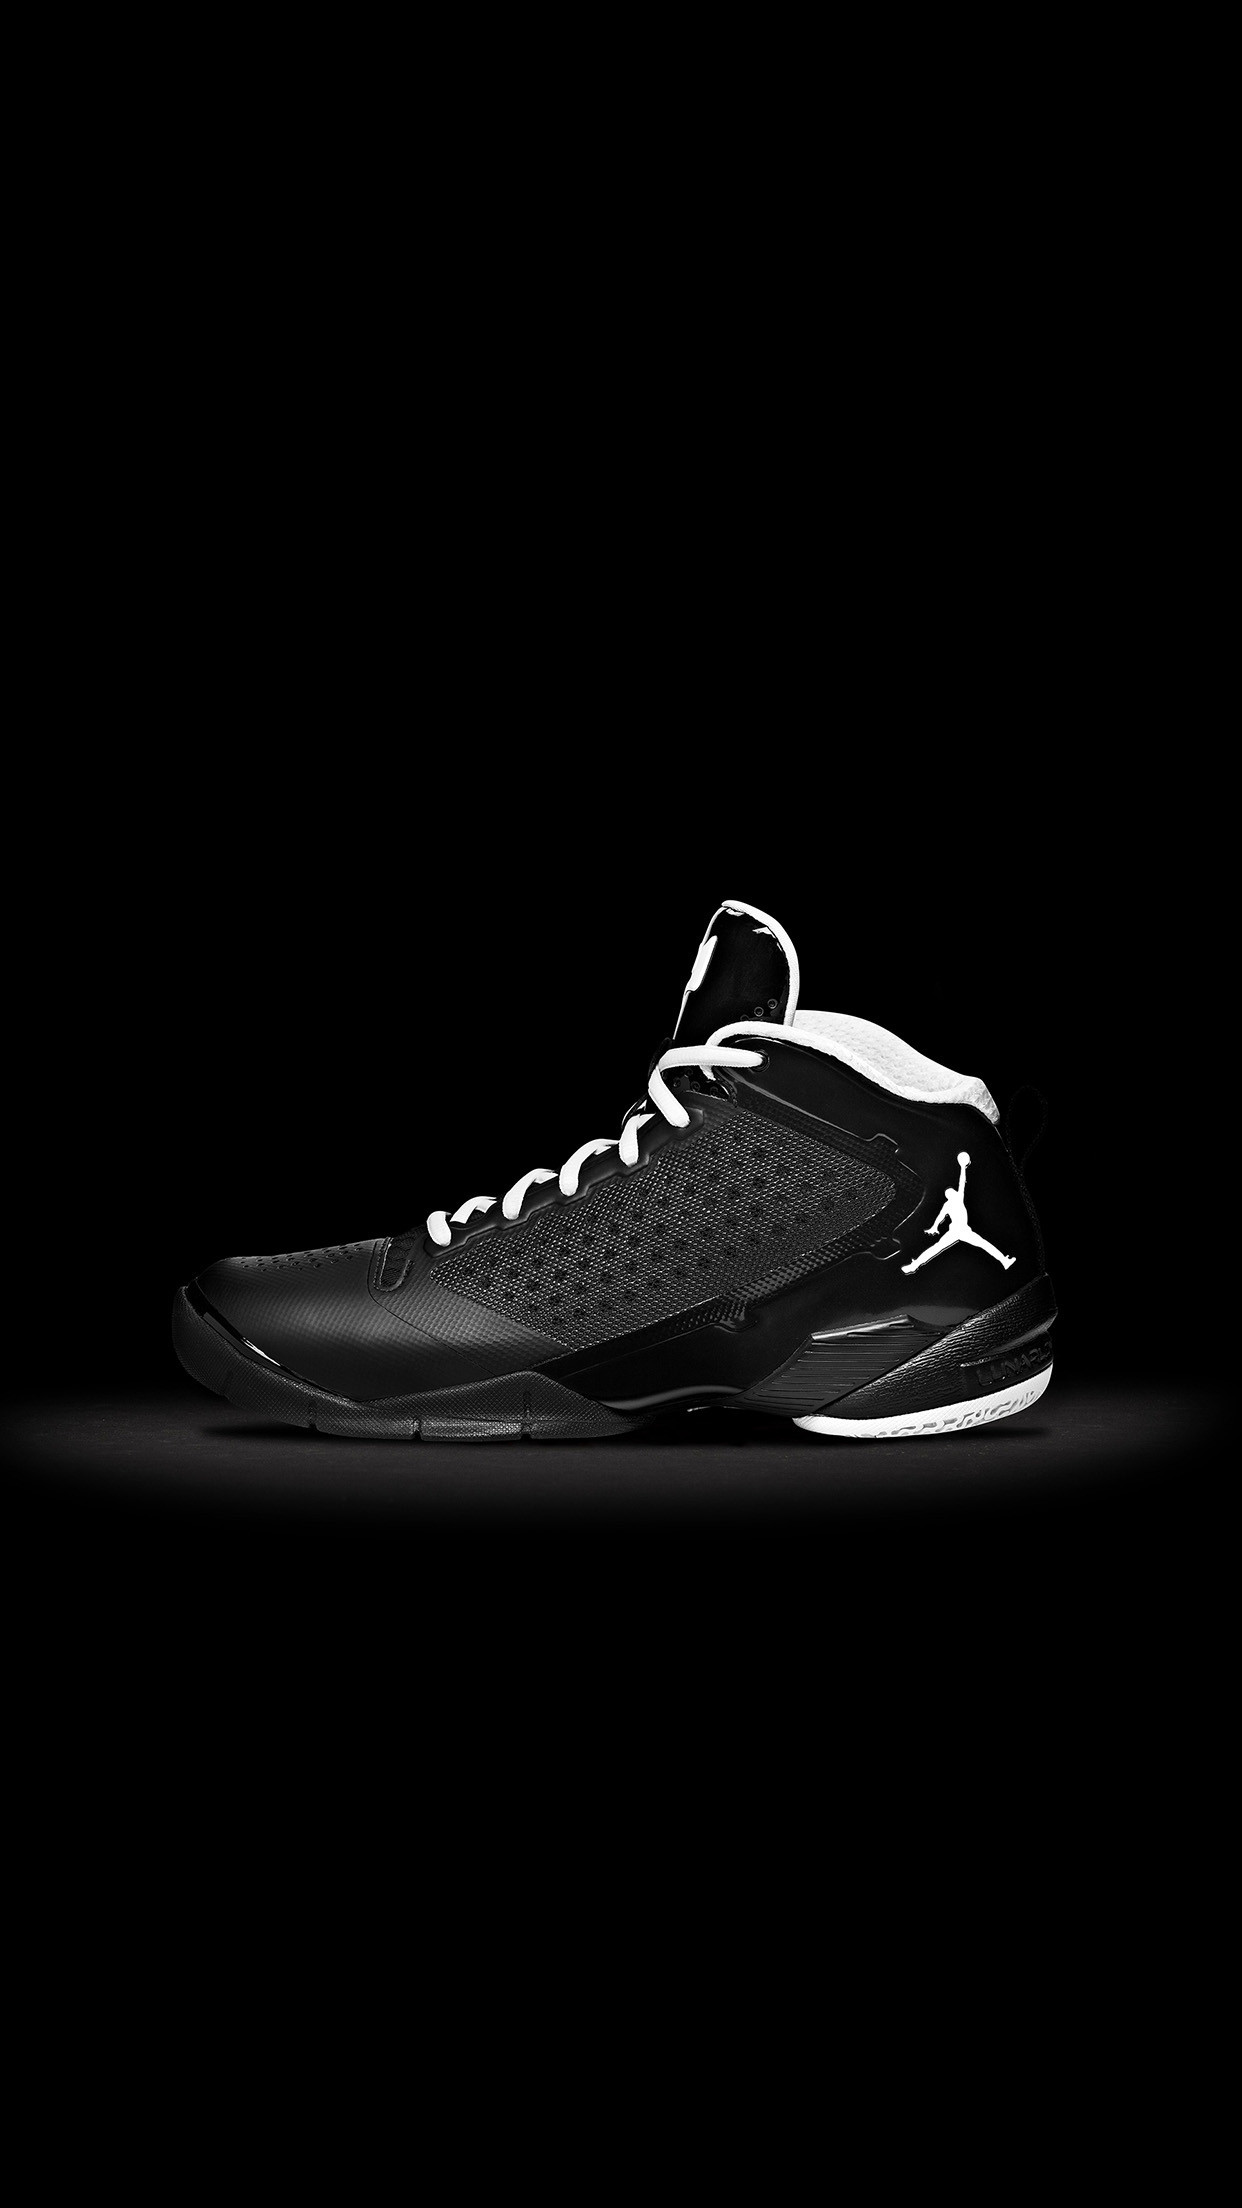 Jordan Fly Wade 2 Black Android Wallpaper …